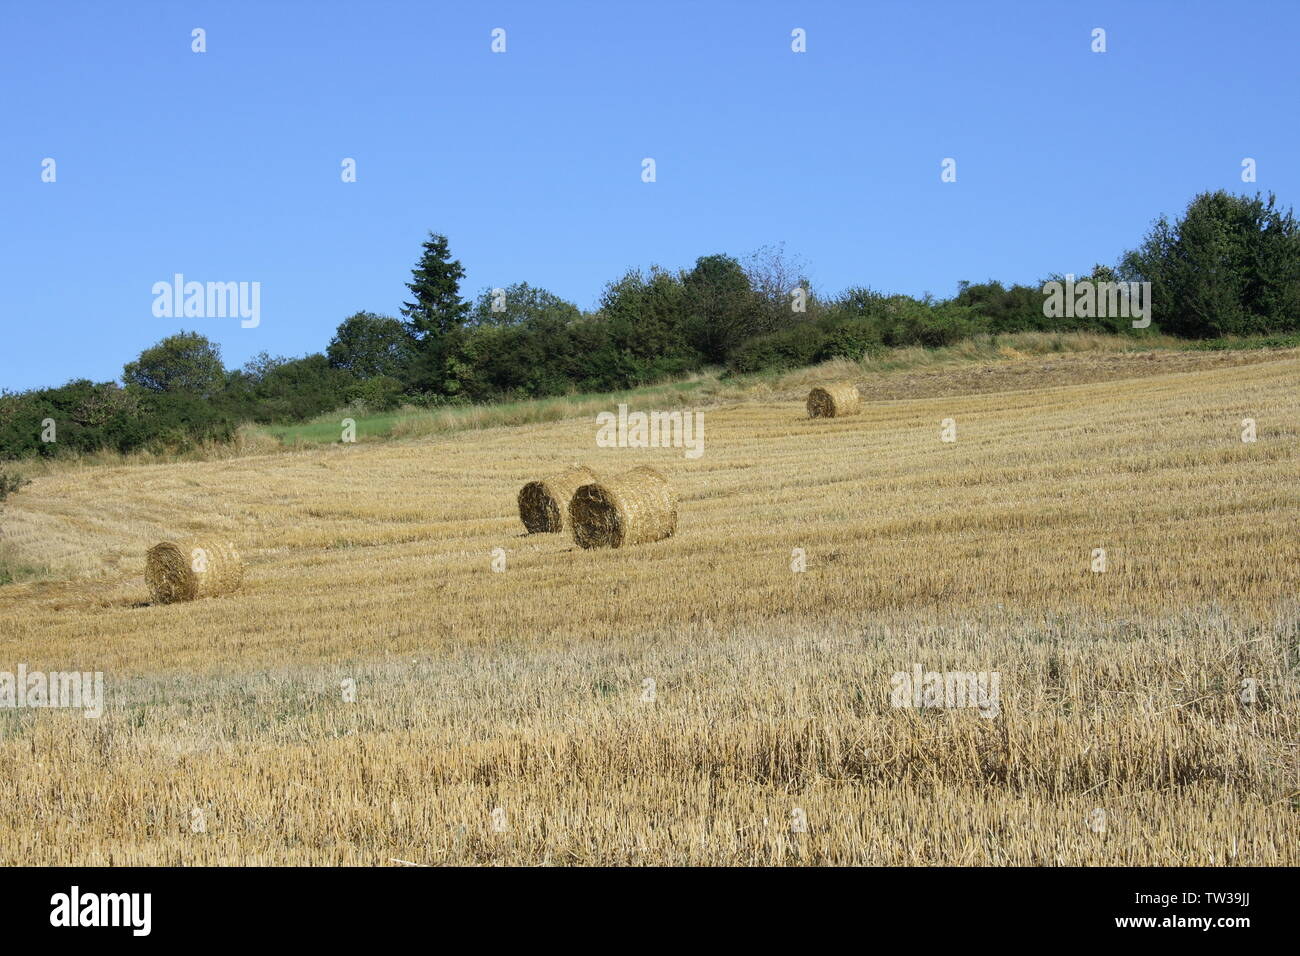 A Harvested grain field with straw rolls, forest in the background - Stock Image